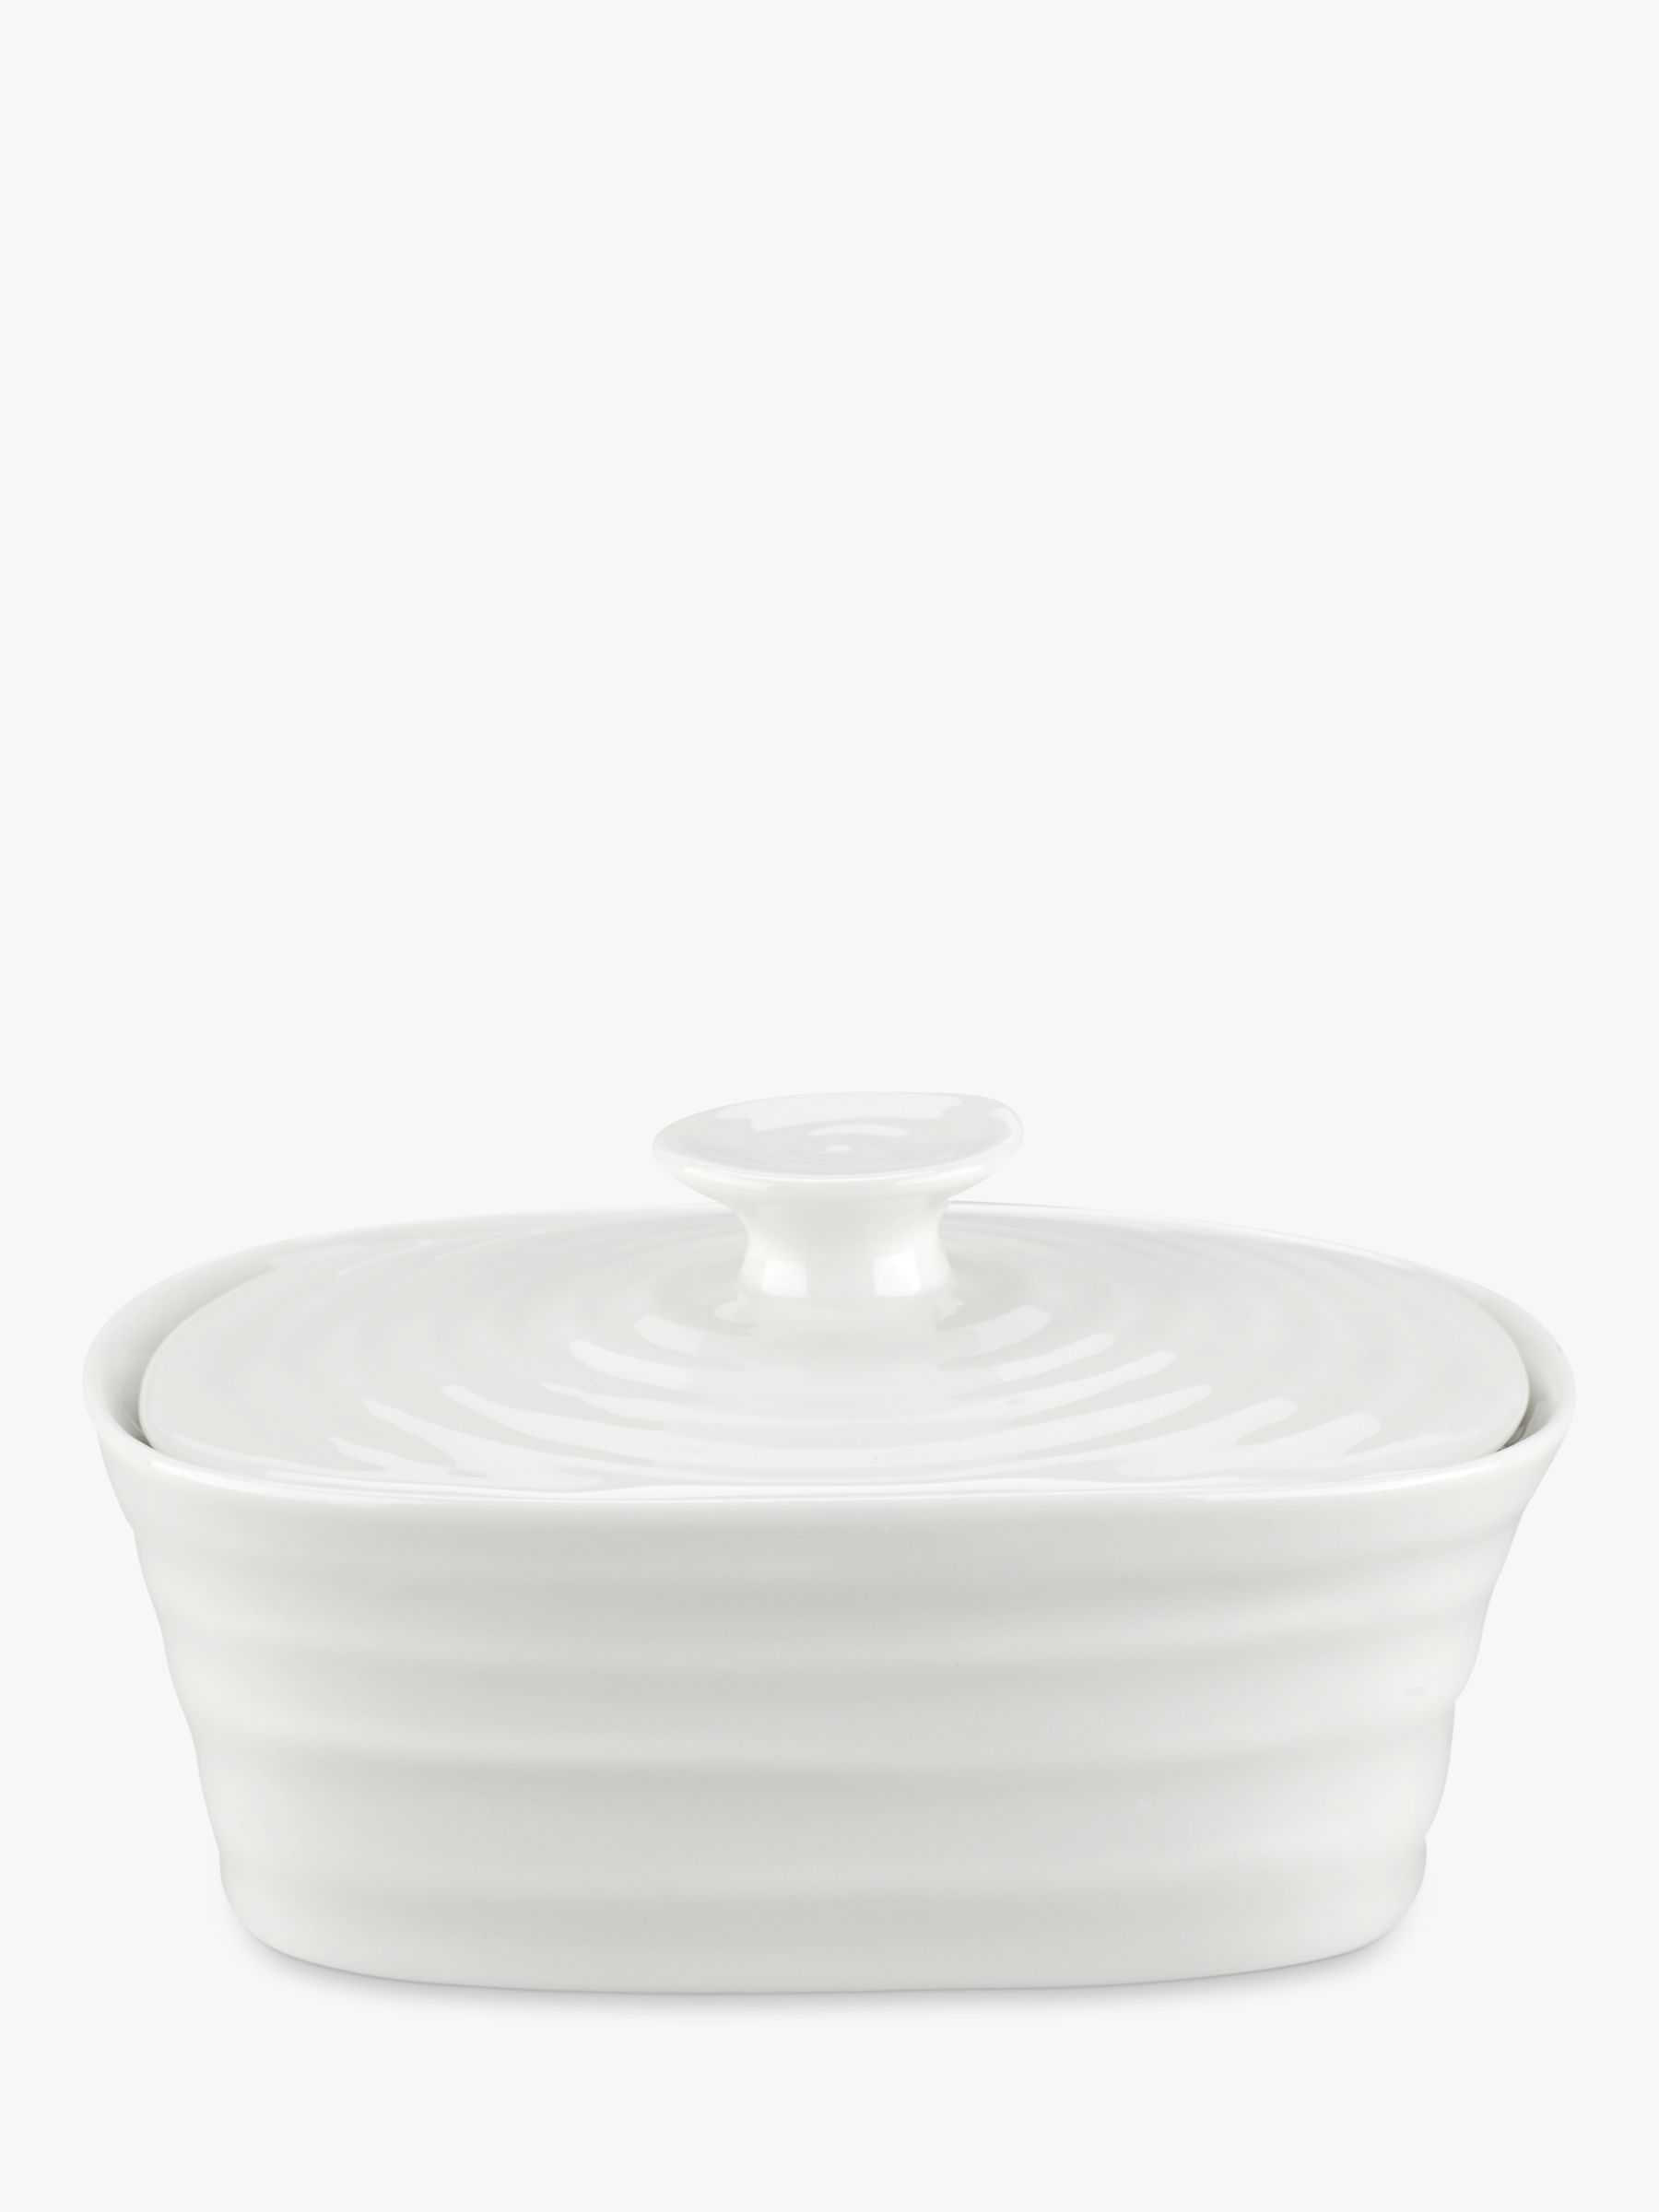 Anthropologie Painted Amaryllis Butter Dish | Compare | Bluewater